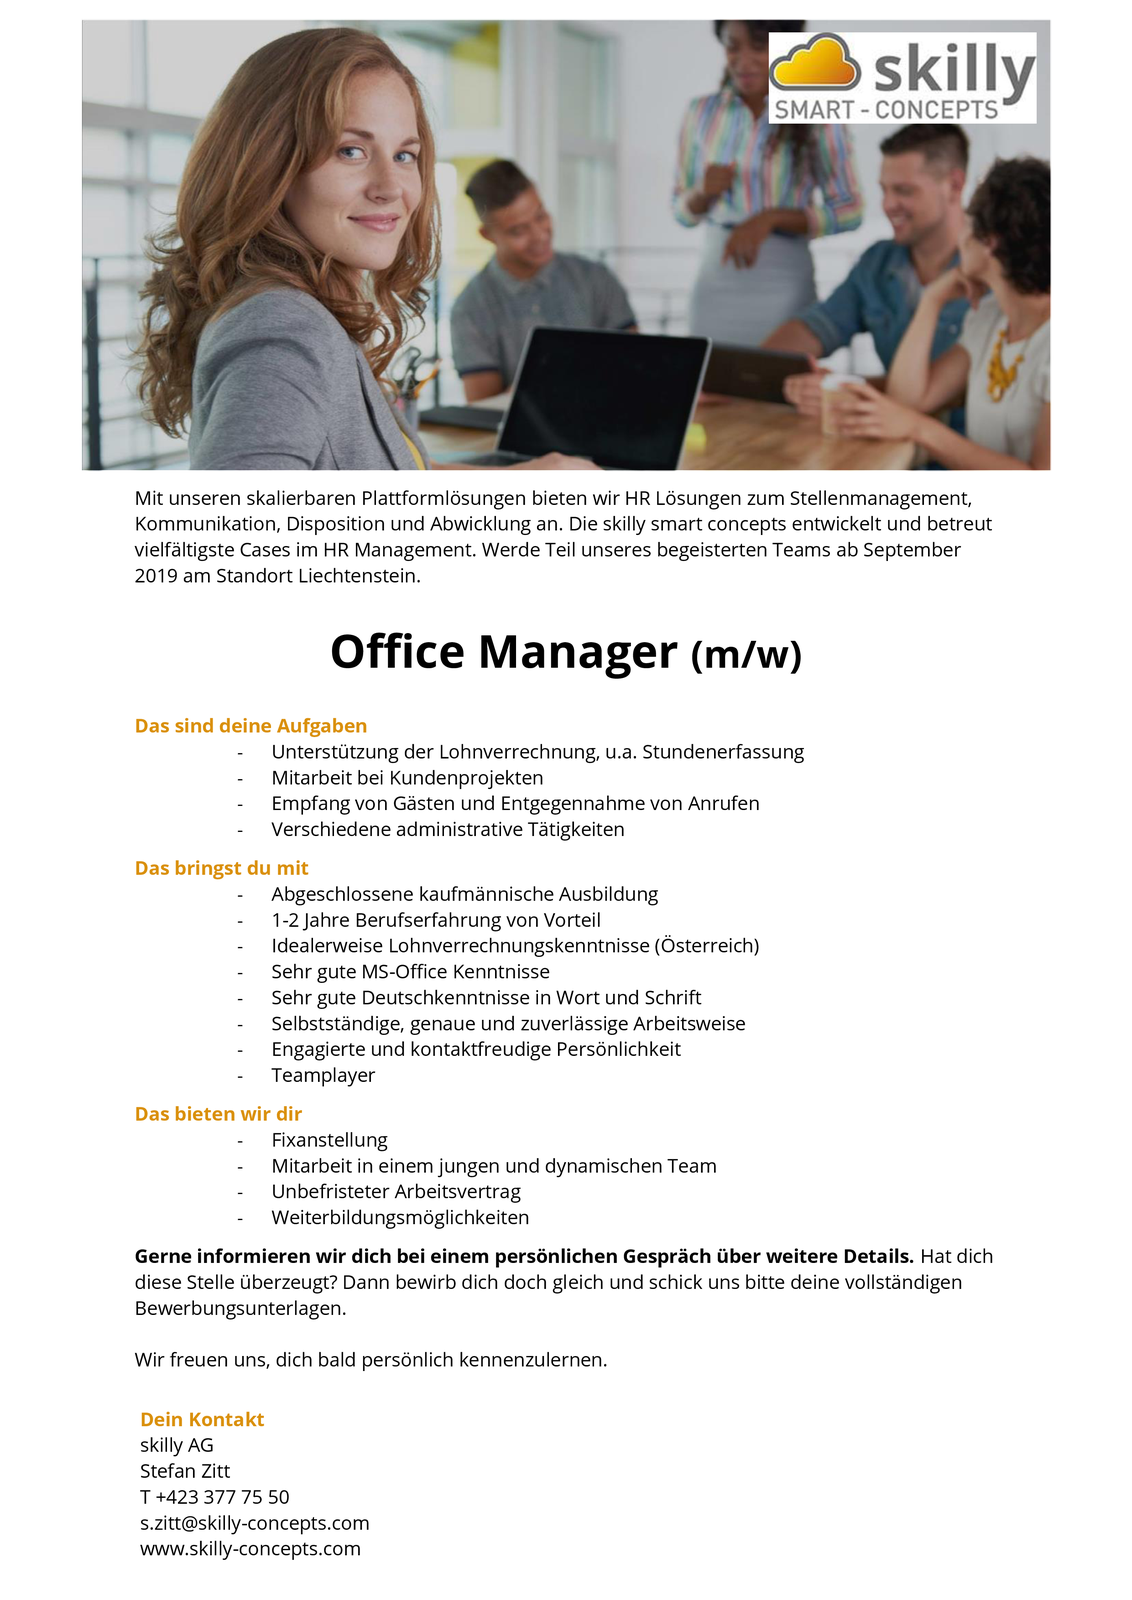 Office Manager (m/w)